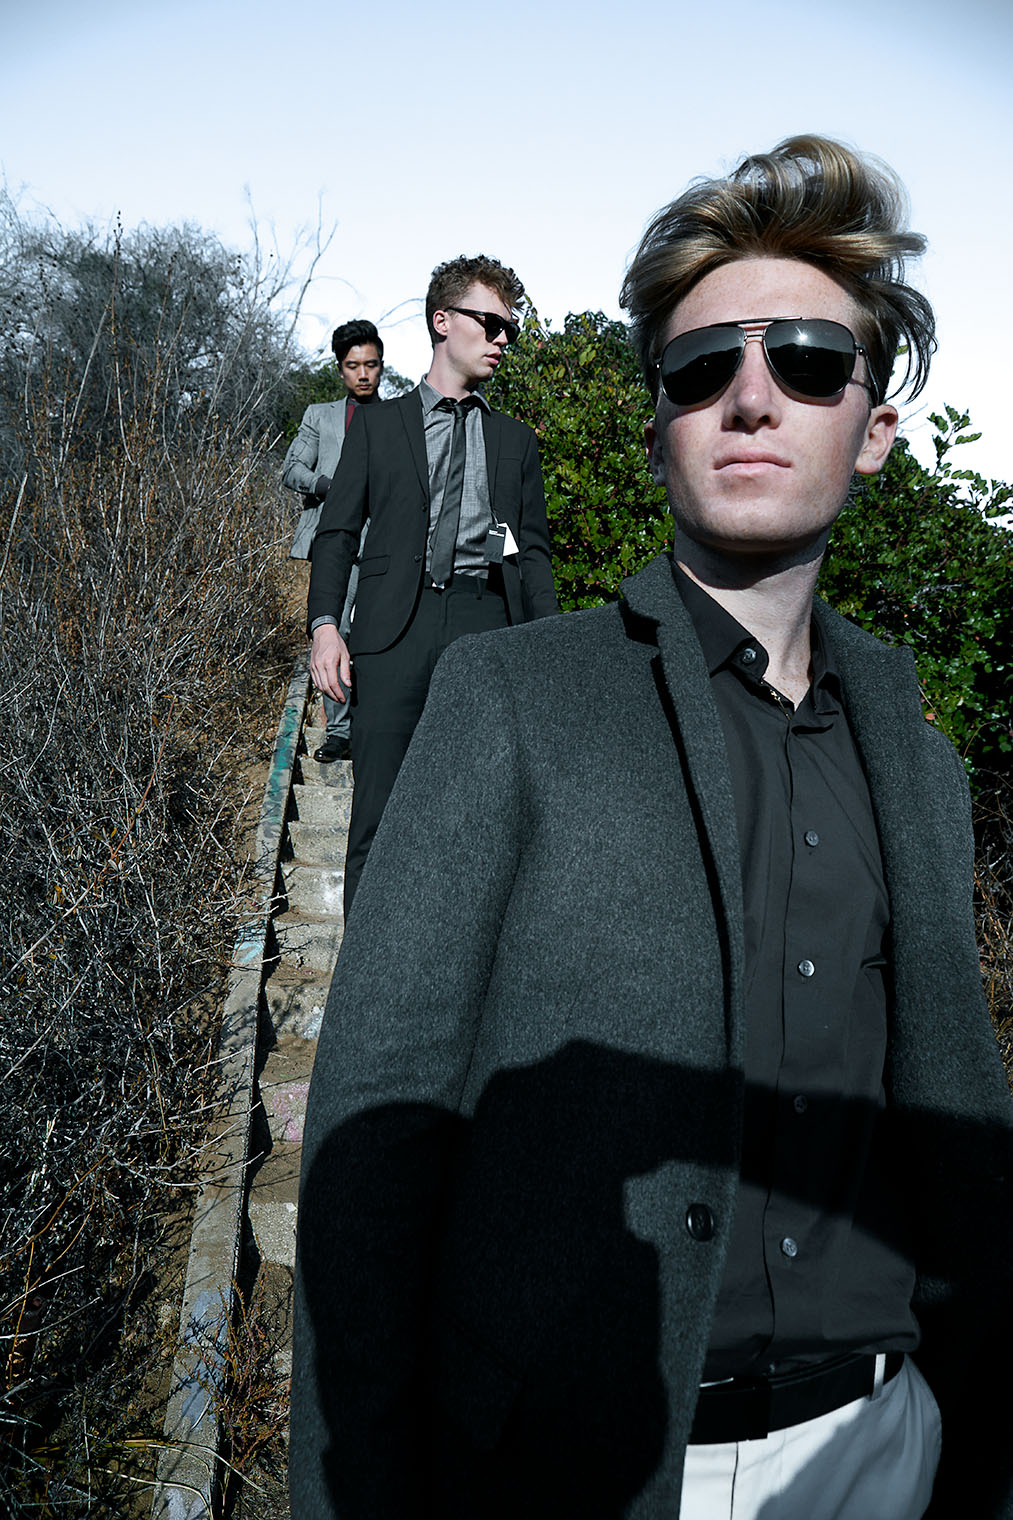 Three men in fine mensstyle suits descending stairs, wearing sunglasses and coats